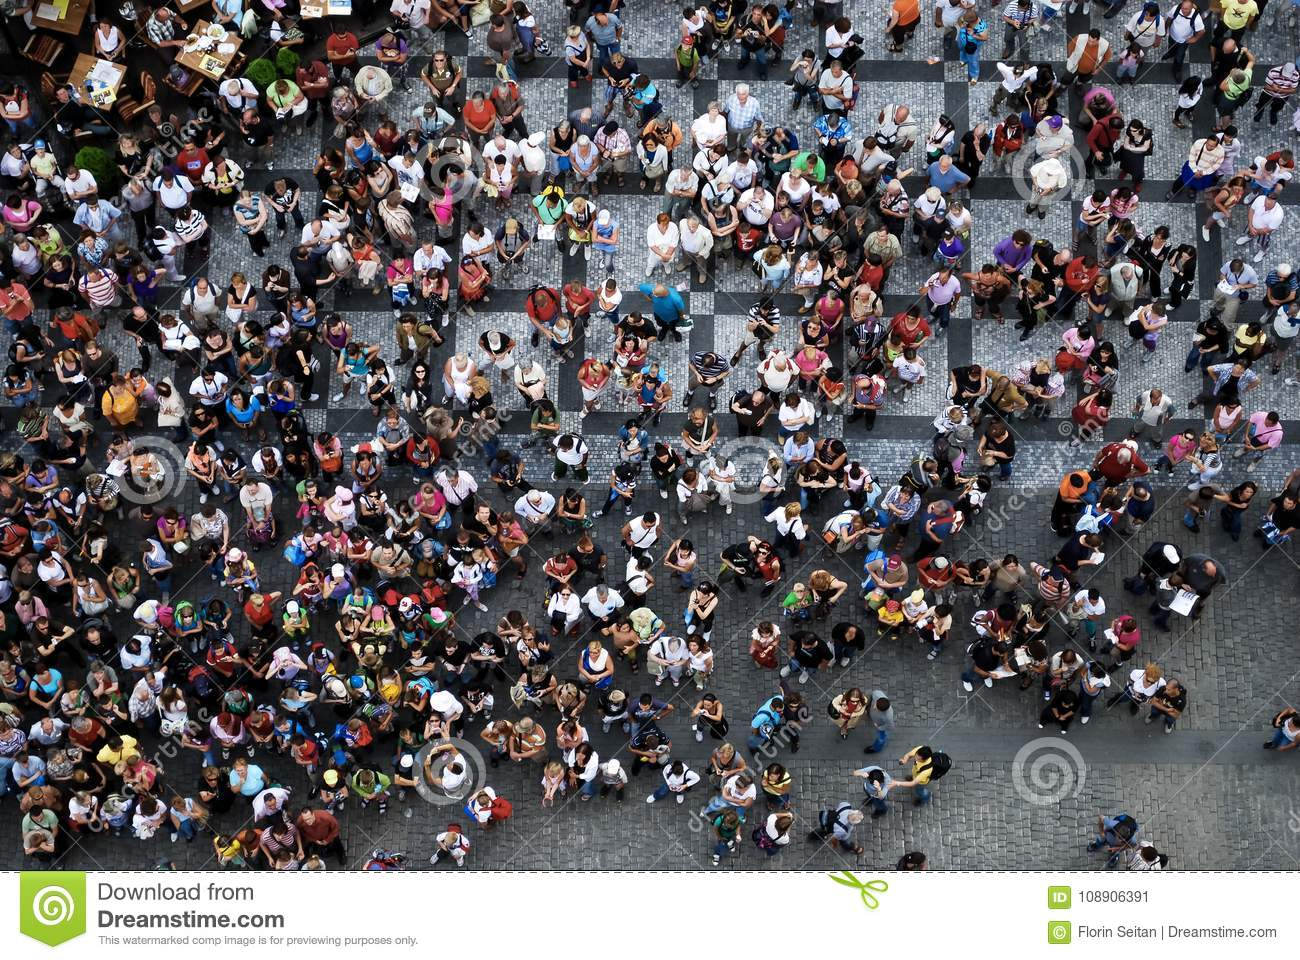 Download Aerial Photograph Of People Gathered In A Square Stock Image